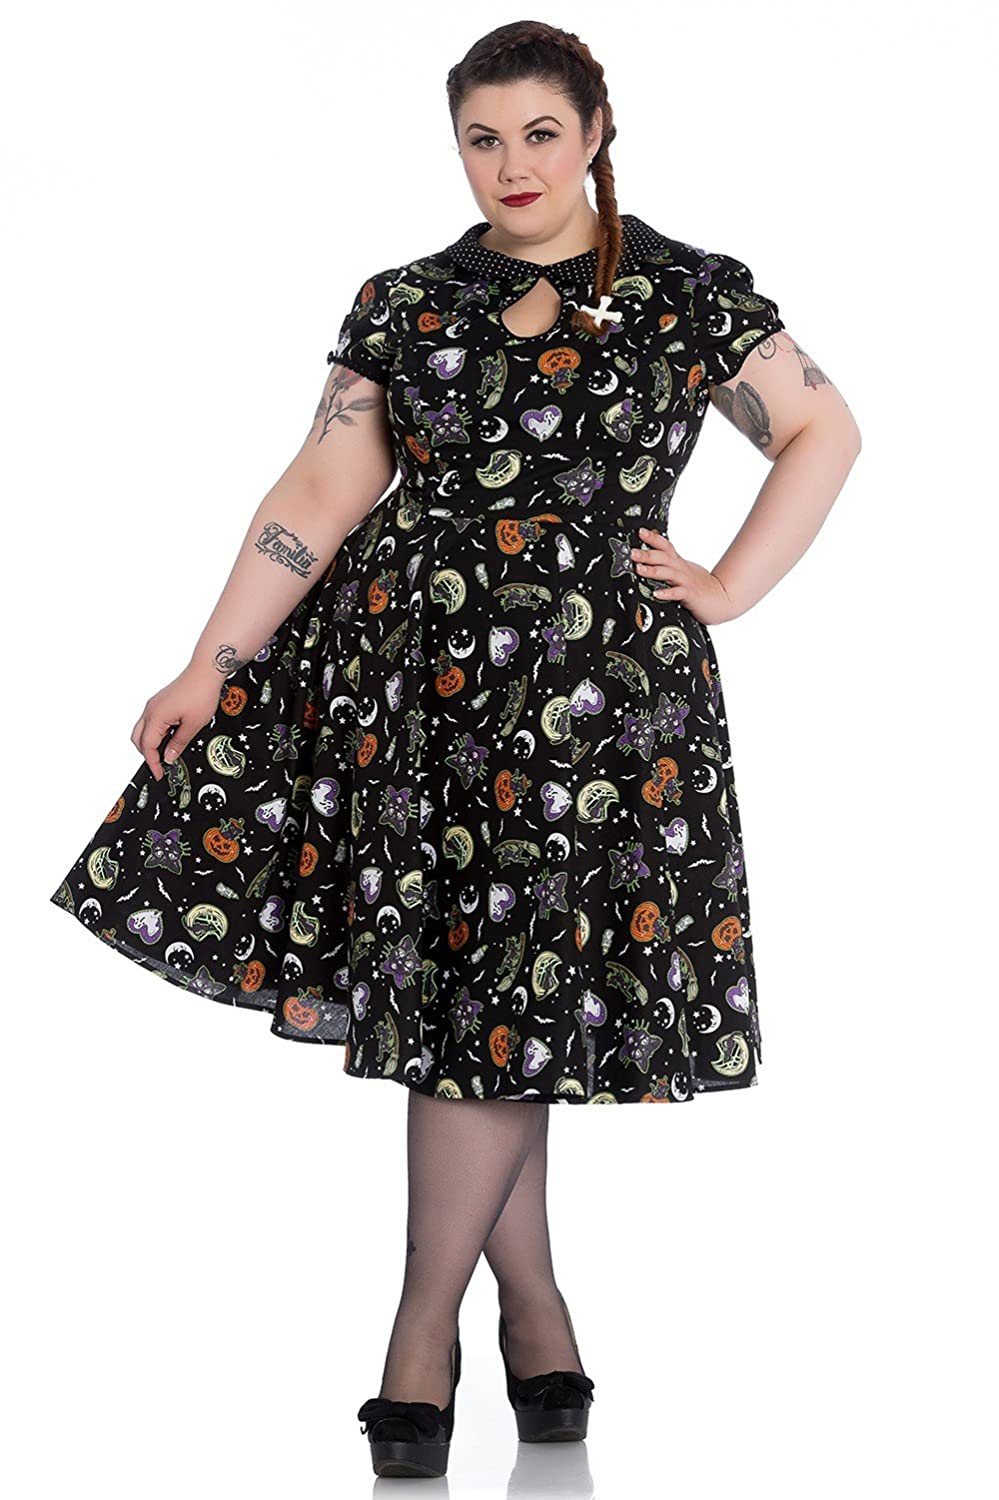 1950s Dresses, 50s Dresses | 1950s Style Dresses Hell Bunny Plus Size Gothic Halloween Black Cat Salem 50s Dress $80.99 AT vintagedancer.com